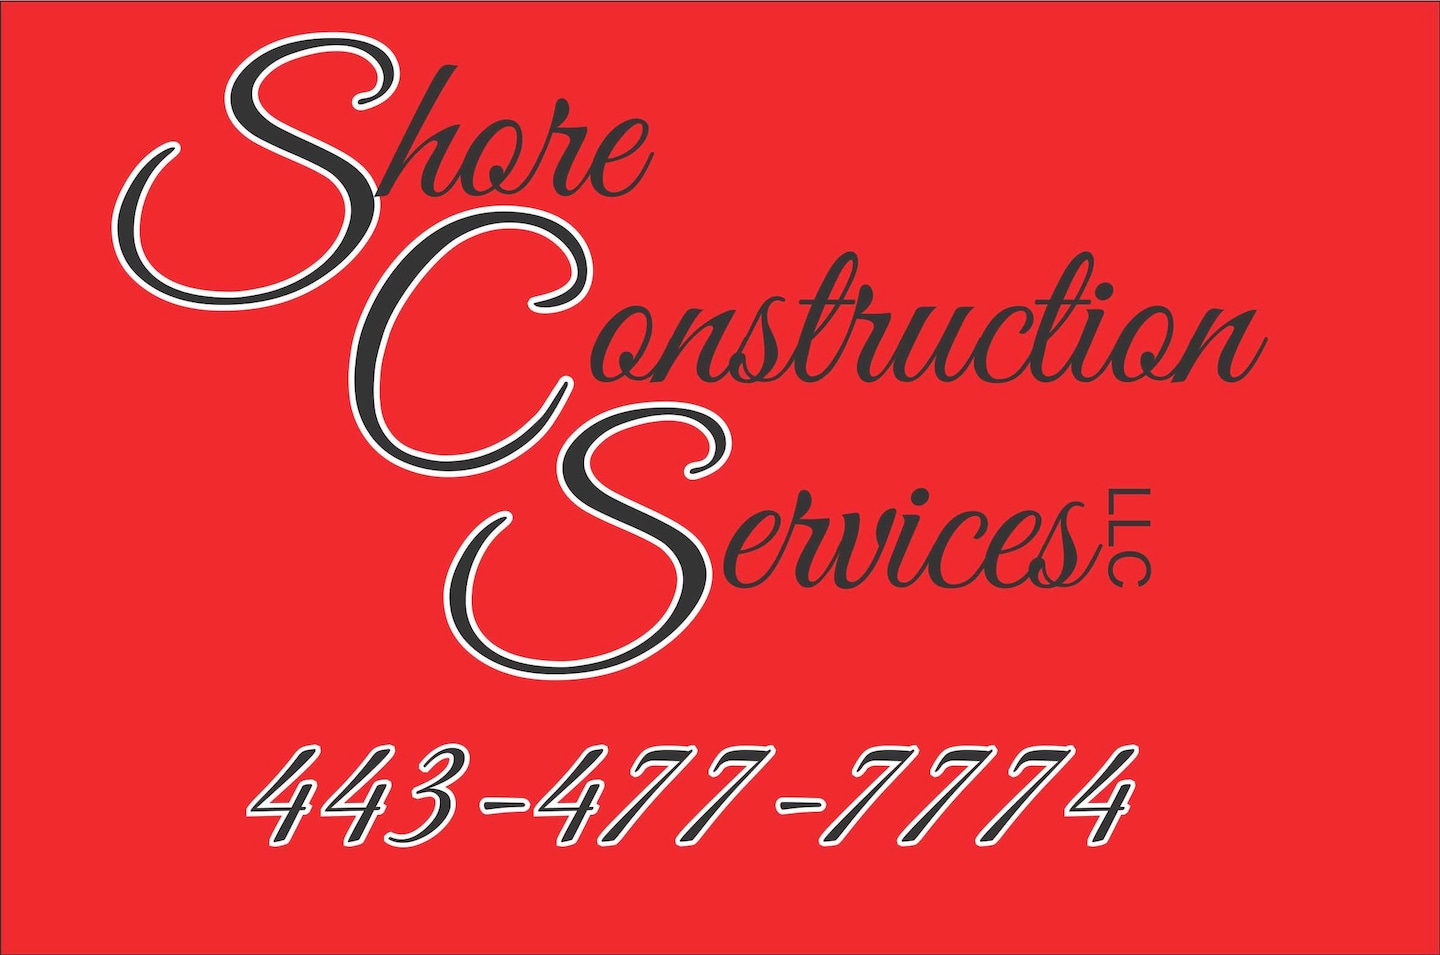 Shore Construction Services, LLC